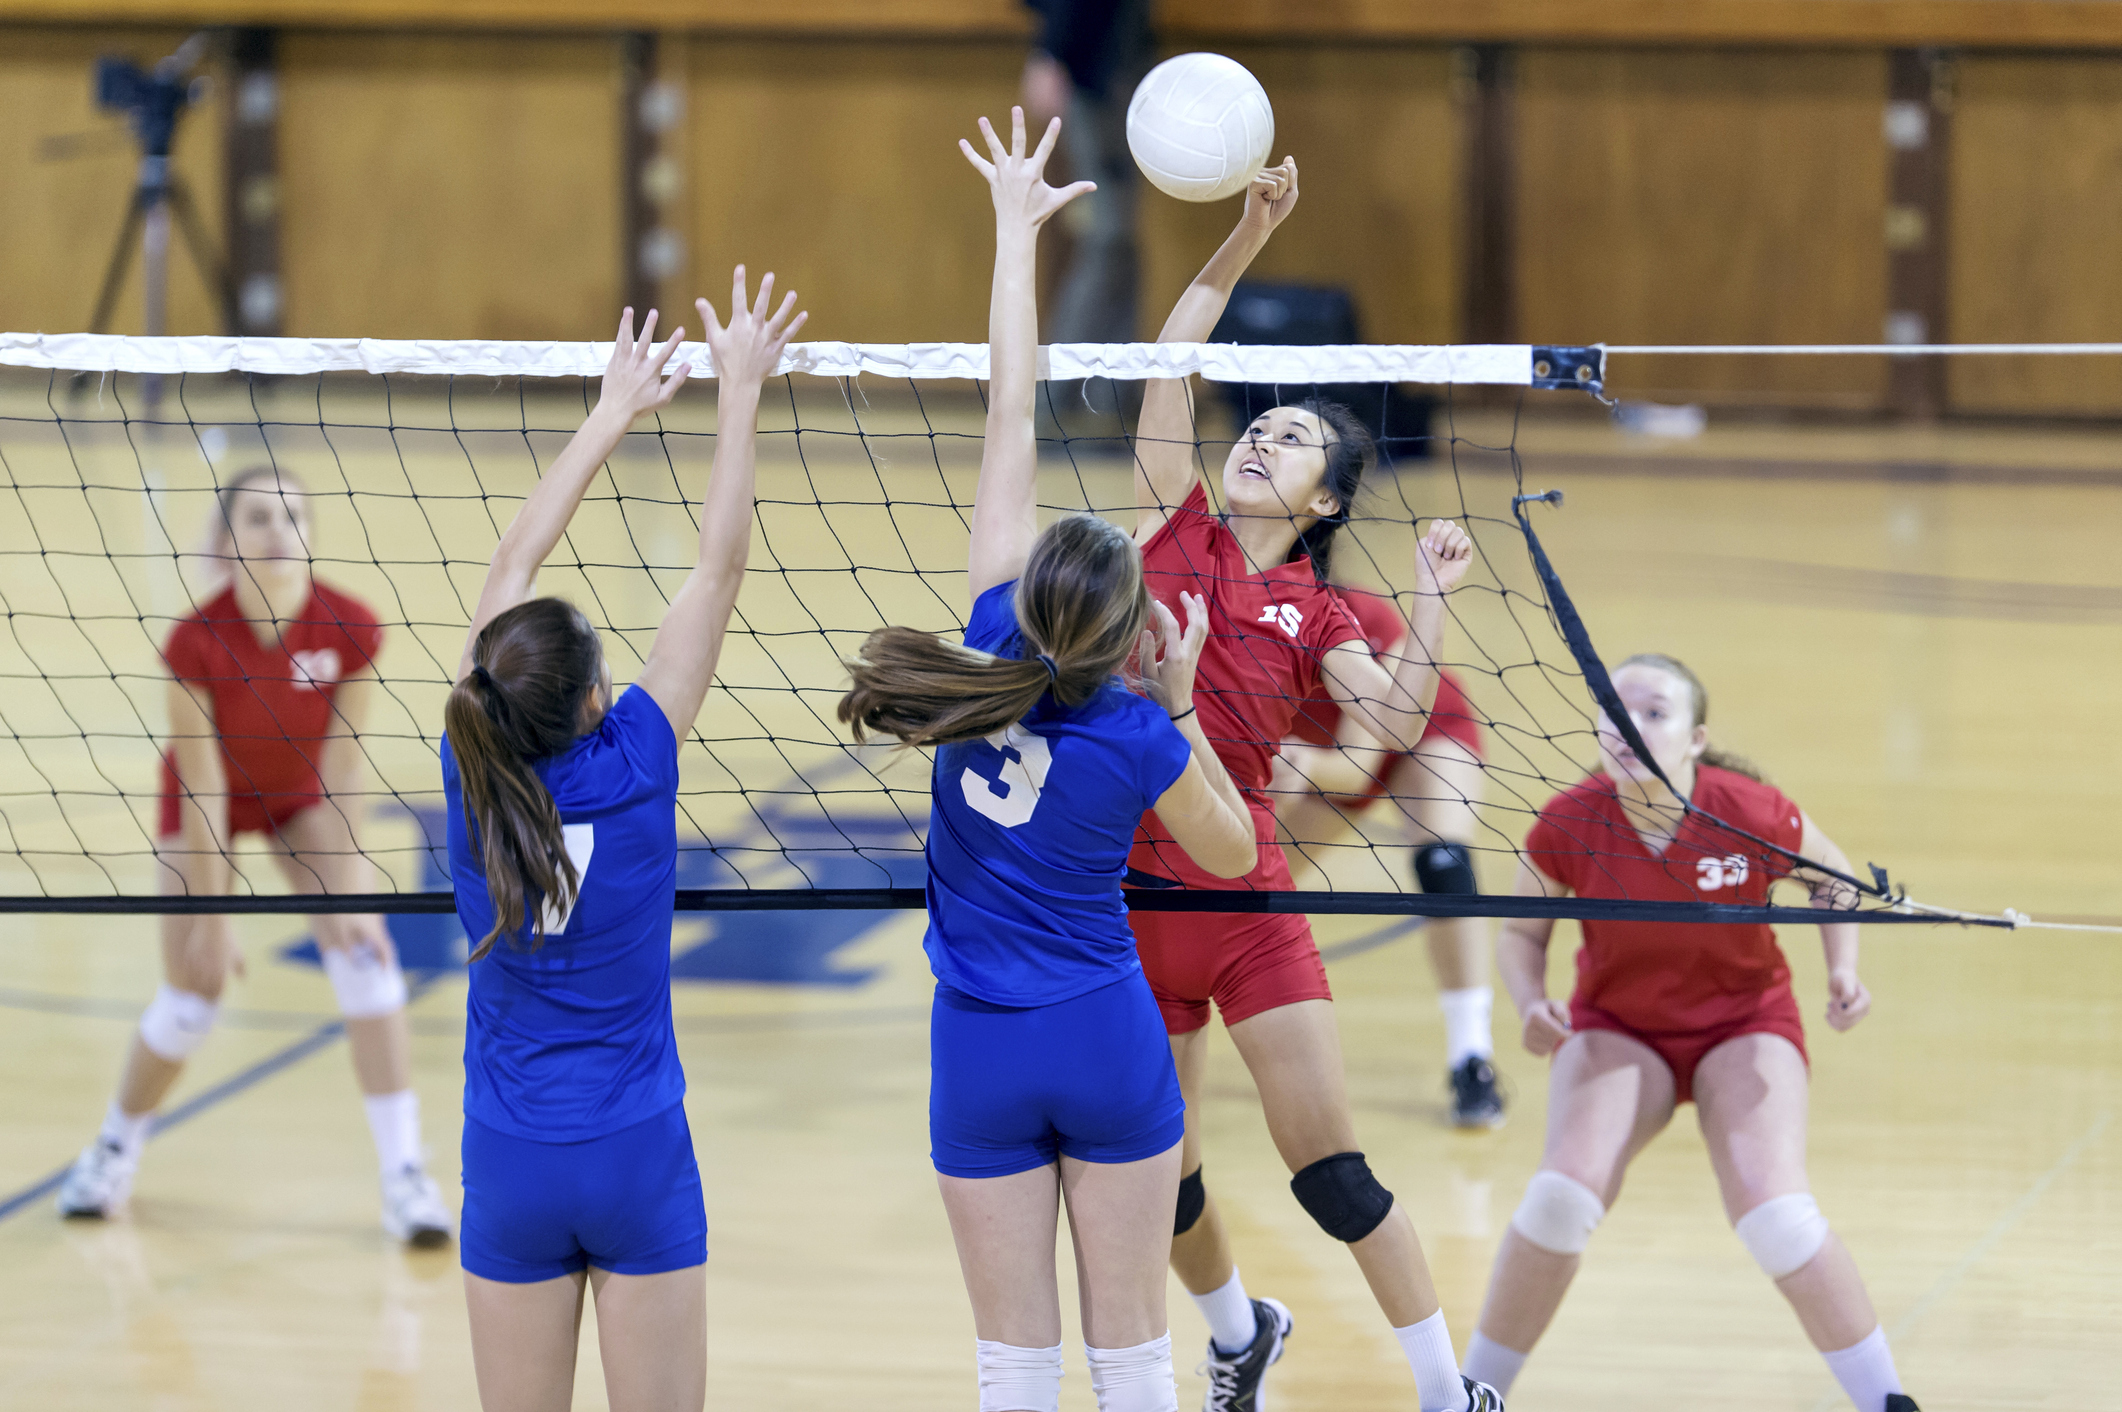 What Are the Differences Between Beach Volleyball and Indoor Volleyball?